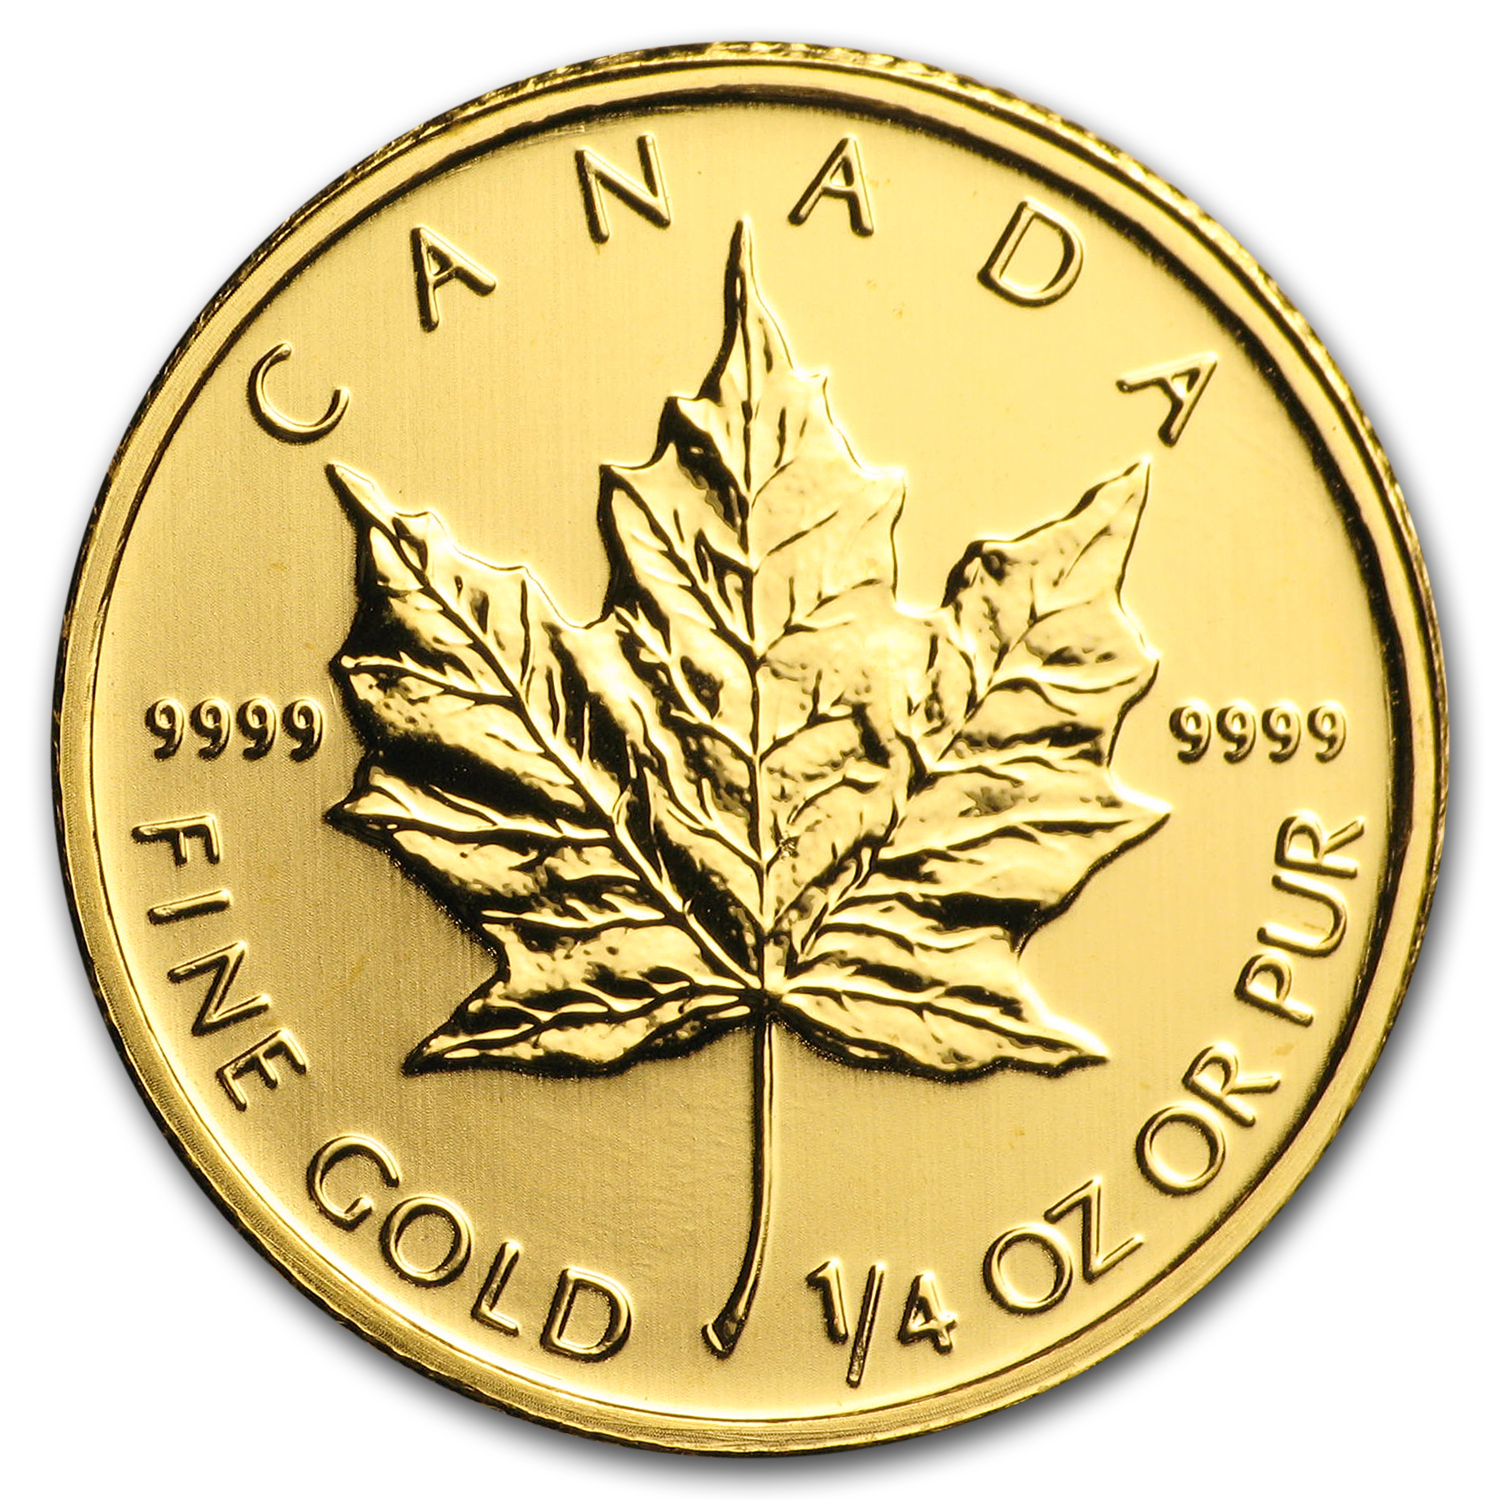 2011 Canada 1/4 oz Gold Maple Leaf BU